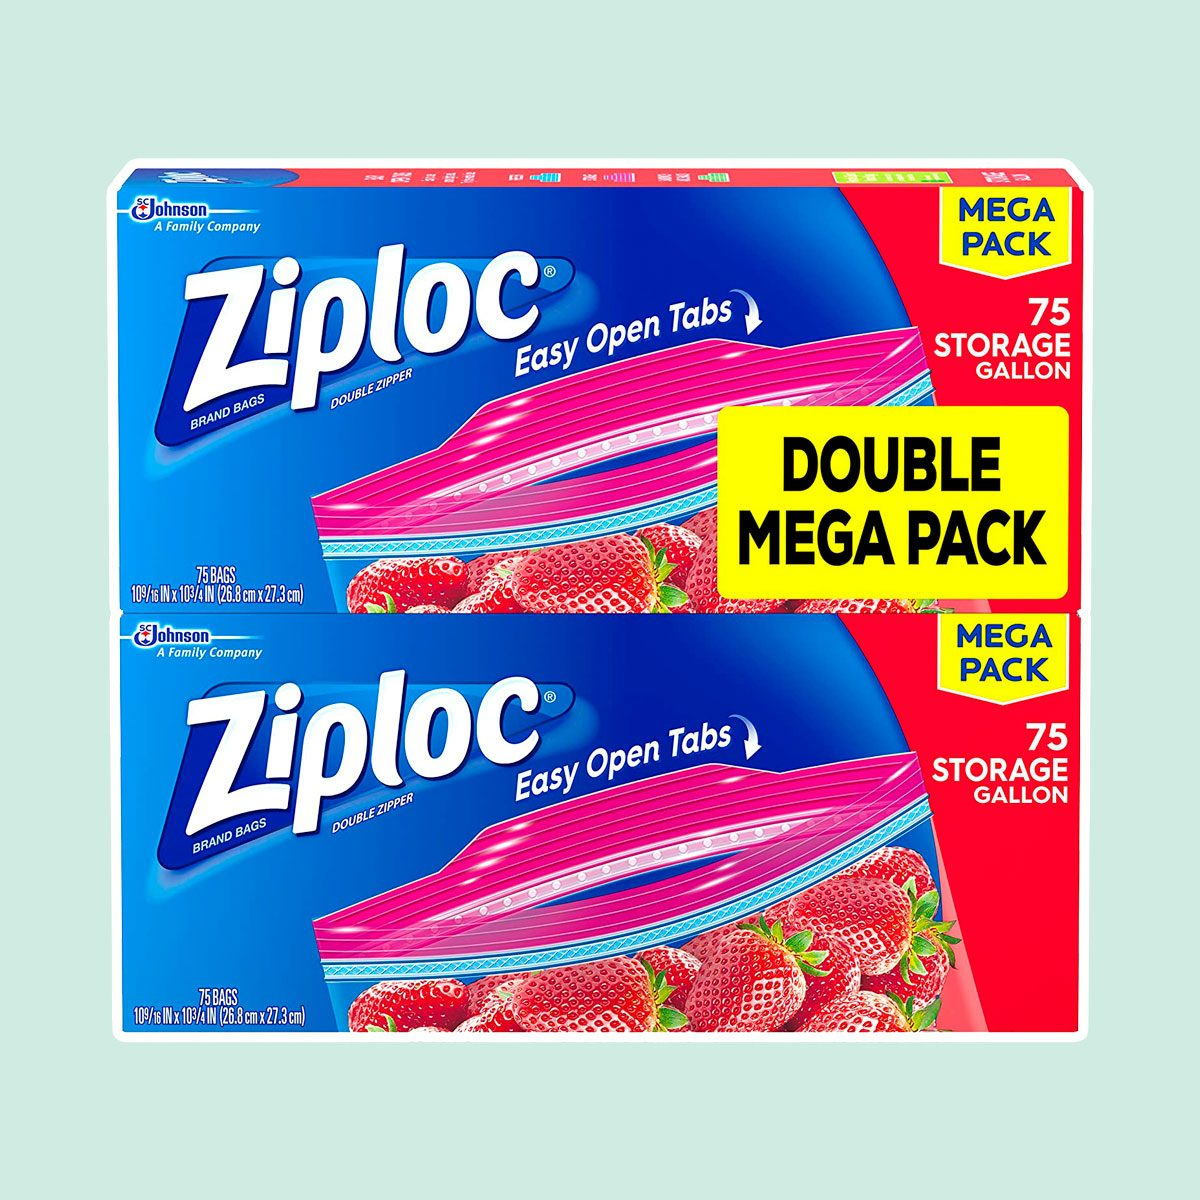 Ziploc Storage Bags, For Food, Sandwich, Organization and More, Smart Zipper Plus Seal, Gallon, 75 Count, Pack of 2, (150 Total Bags)